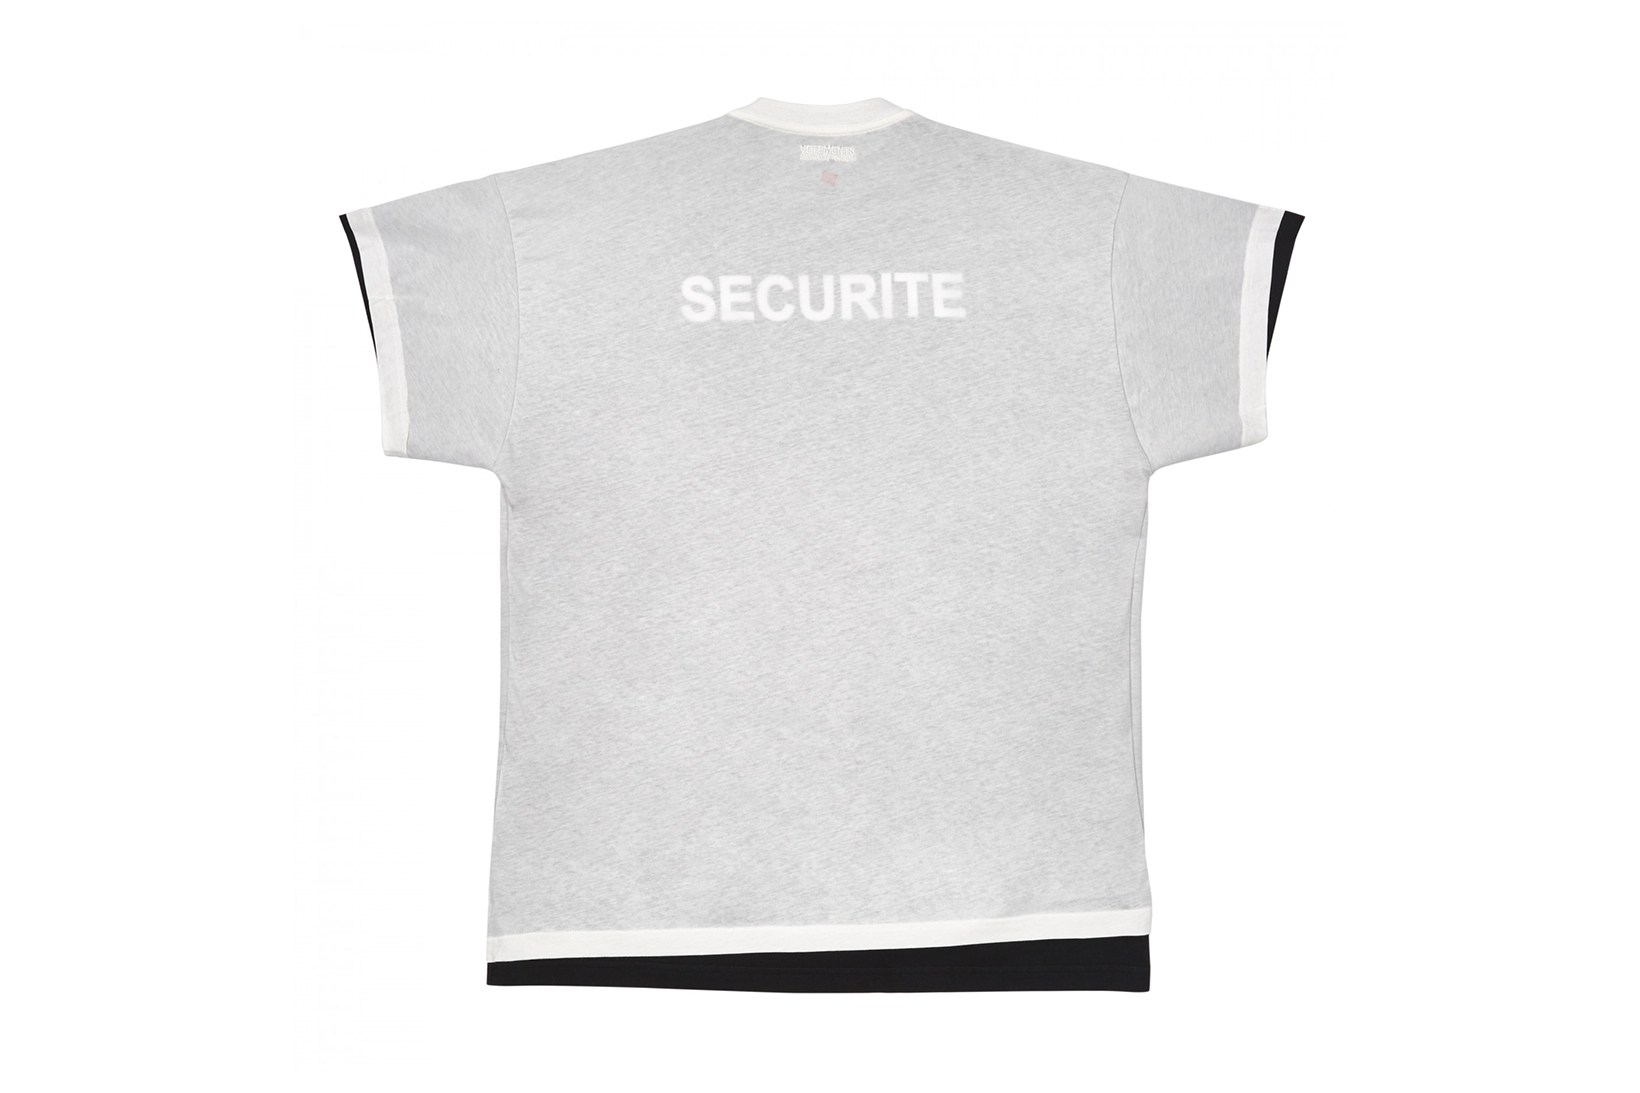 vetements-securite-double-t-shirt-3